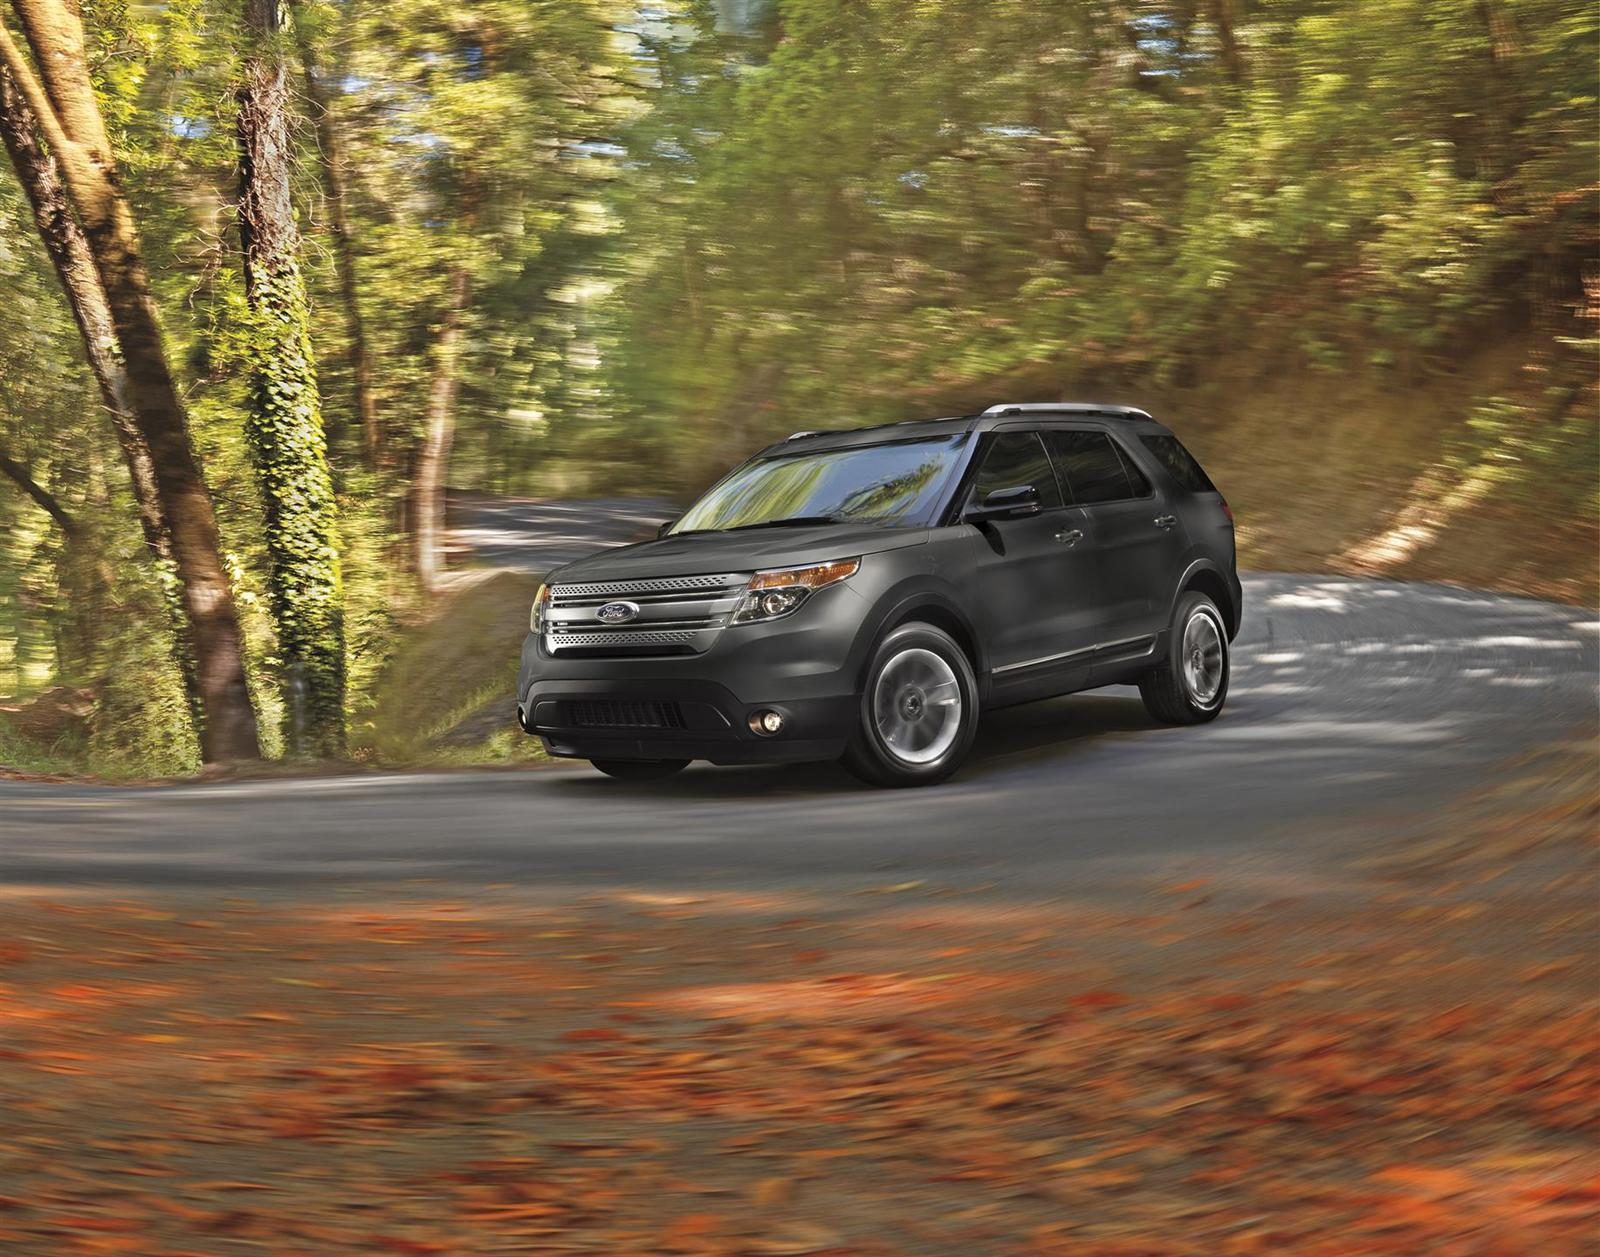 2015 ford explorer sport image. Black Bedroom Furniture Sets. Home Design Ideas